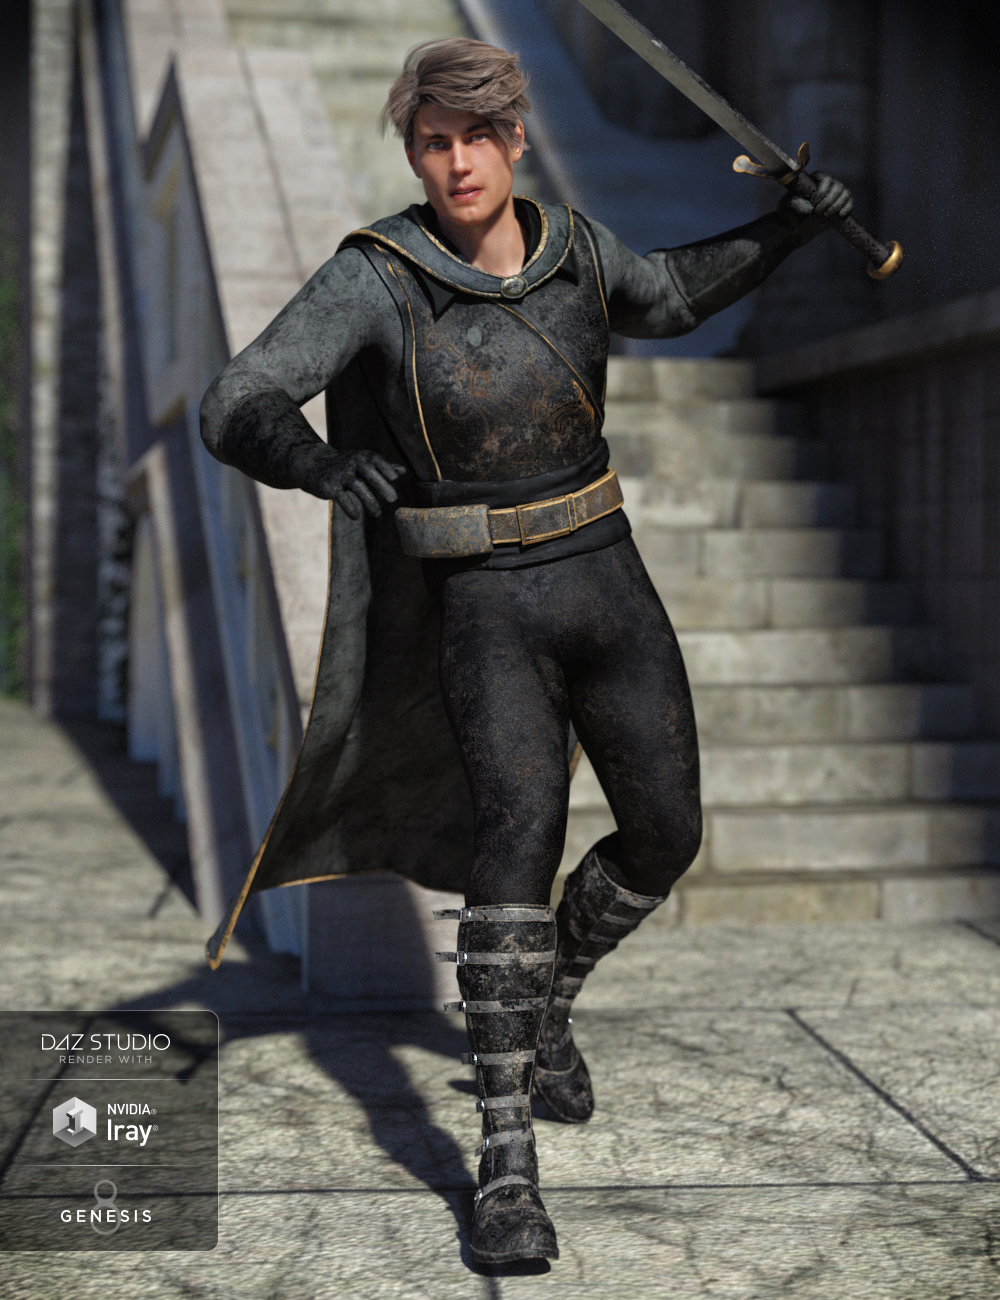 Rogue Hunter Outfit for Genesis 8 Male(s) by: Moonscape GraphicsSade, 3D Models by Daz 3D